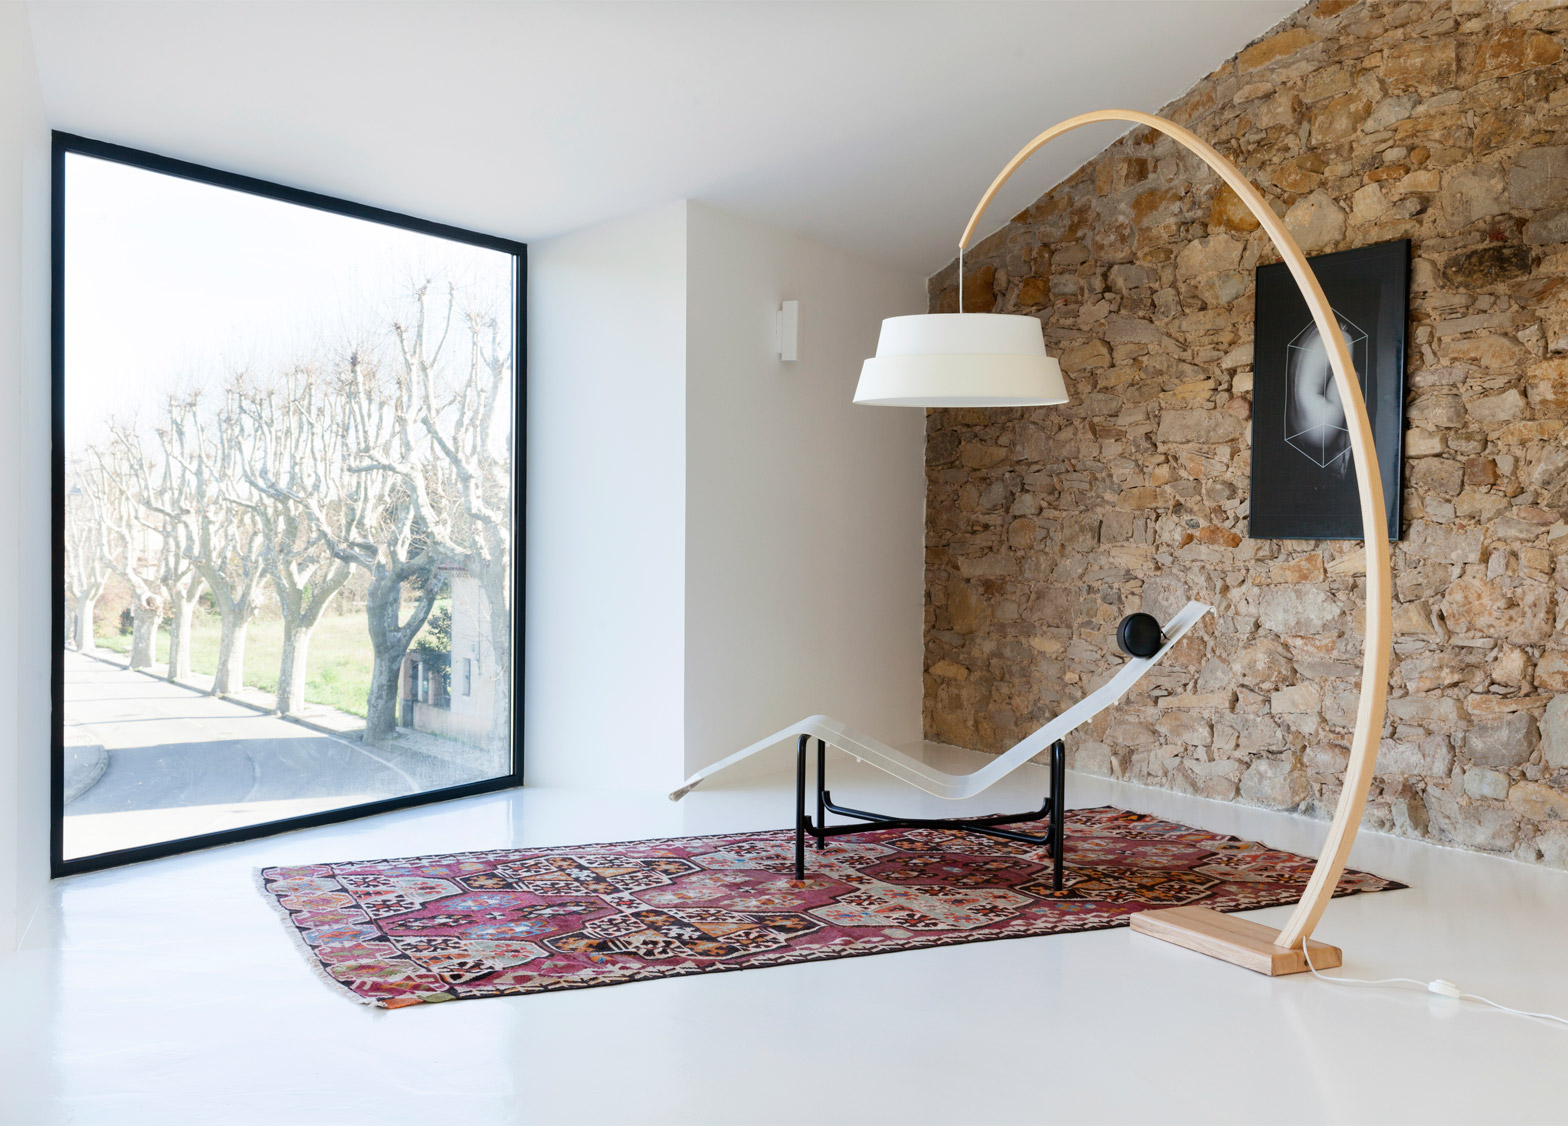 3 Of 9; Renovation In Provence By Michael Menuet